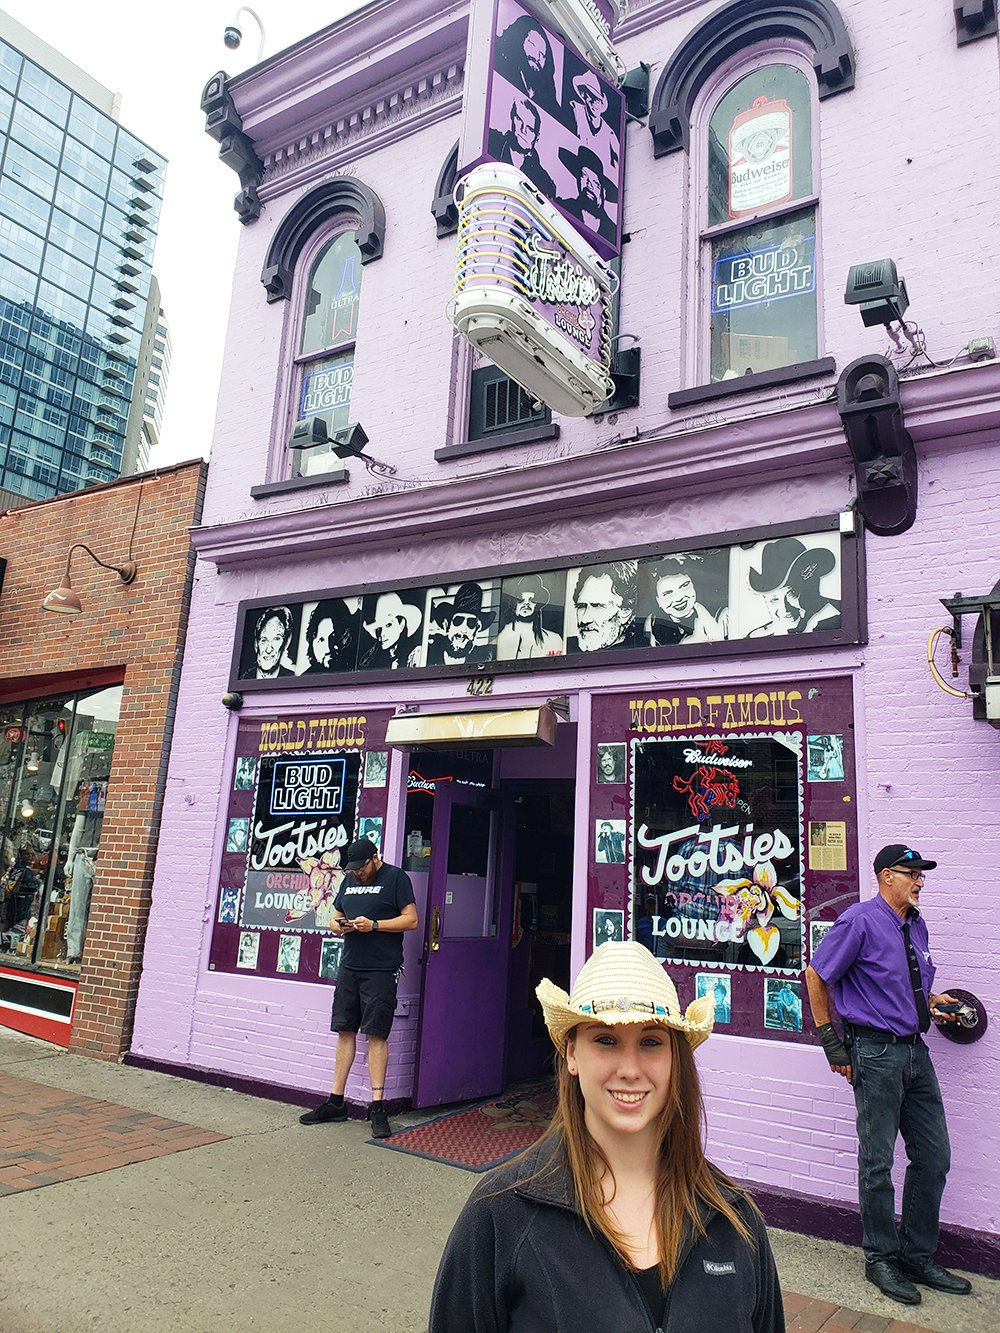 Violet Sky at Tootsies Orchid Lounge, Nashville, Tennessee (Photo Credit: Violet Sky)